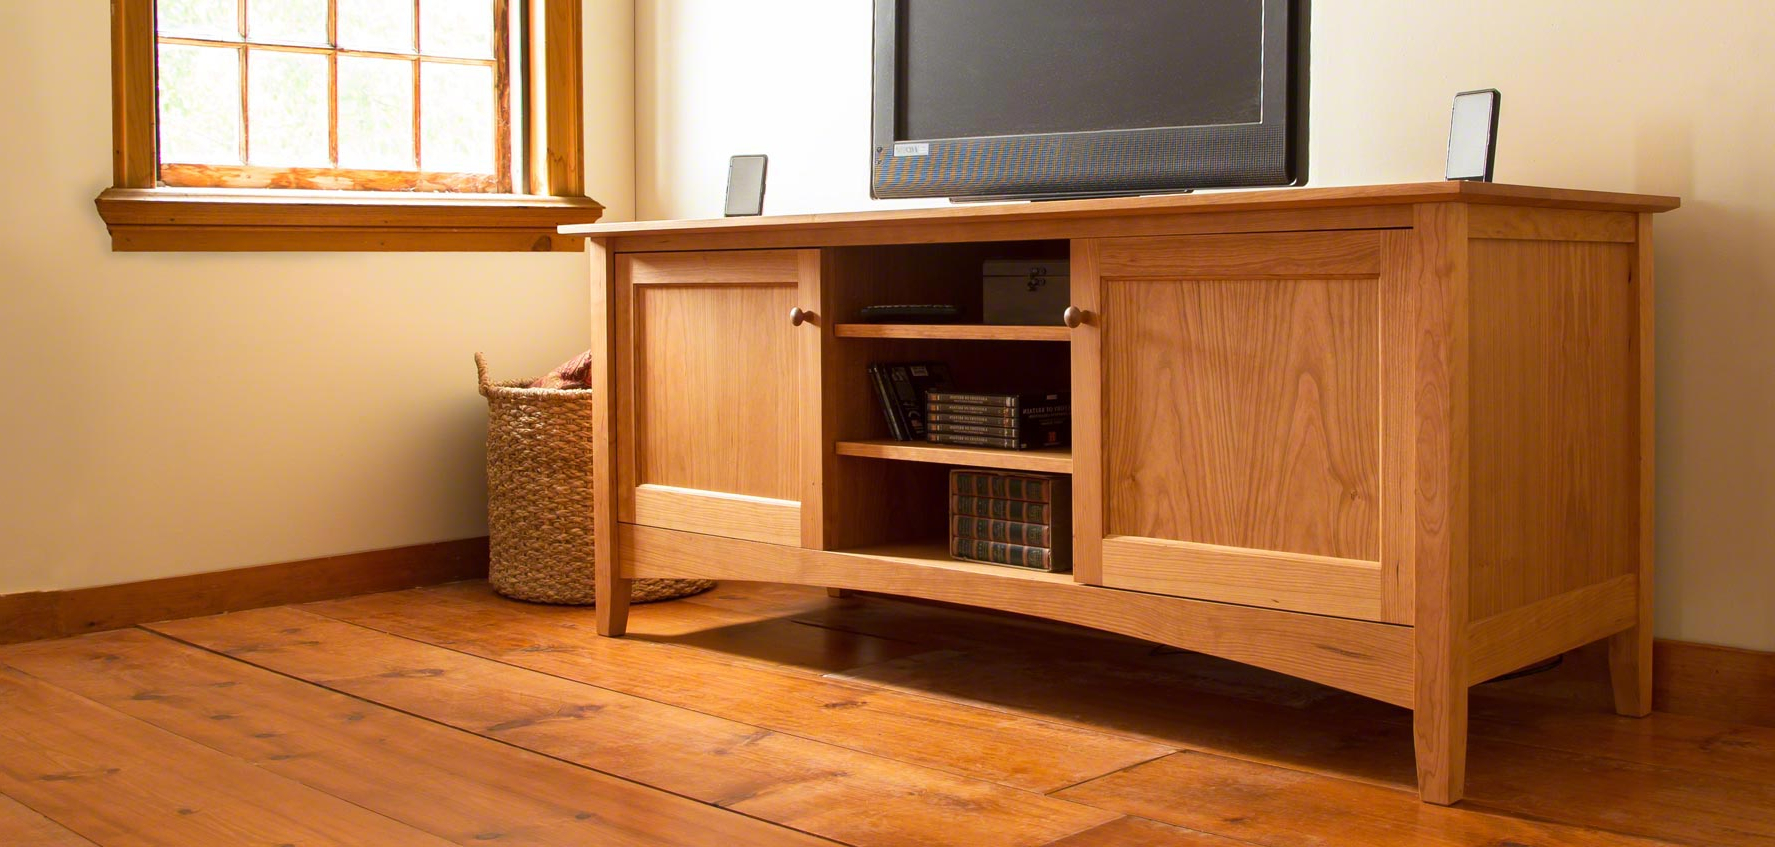 Trendy Wood Tv Floor Stands Intended For Handcrafted Wood Tv Stands & Media Consoles – Vermont Woods Studios (Gallery 11 of 20)